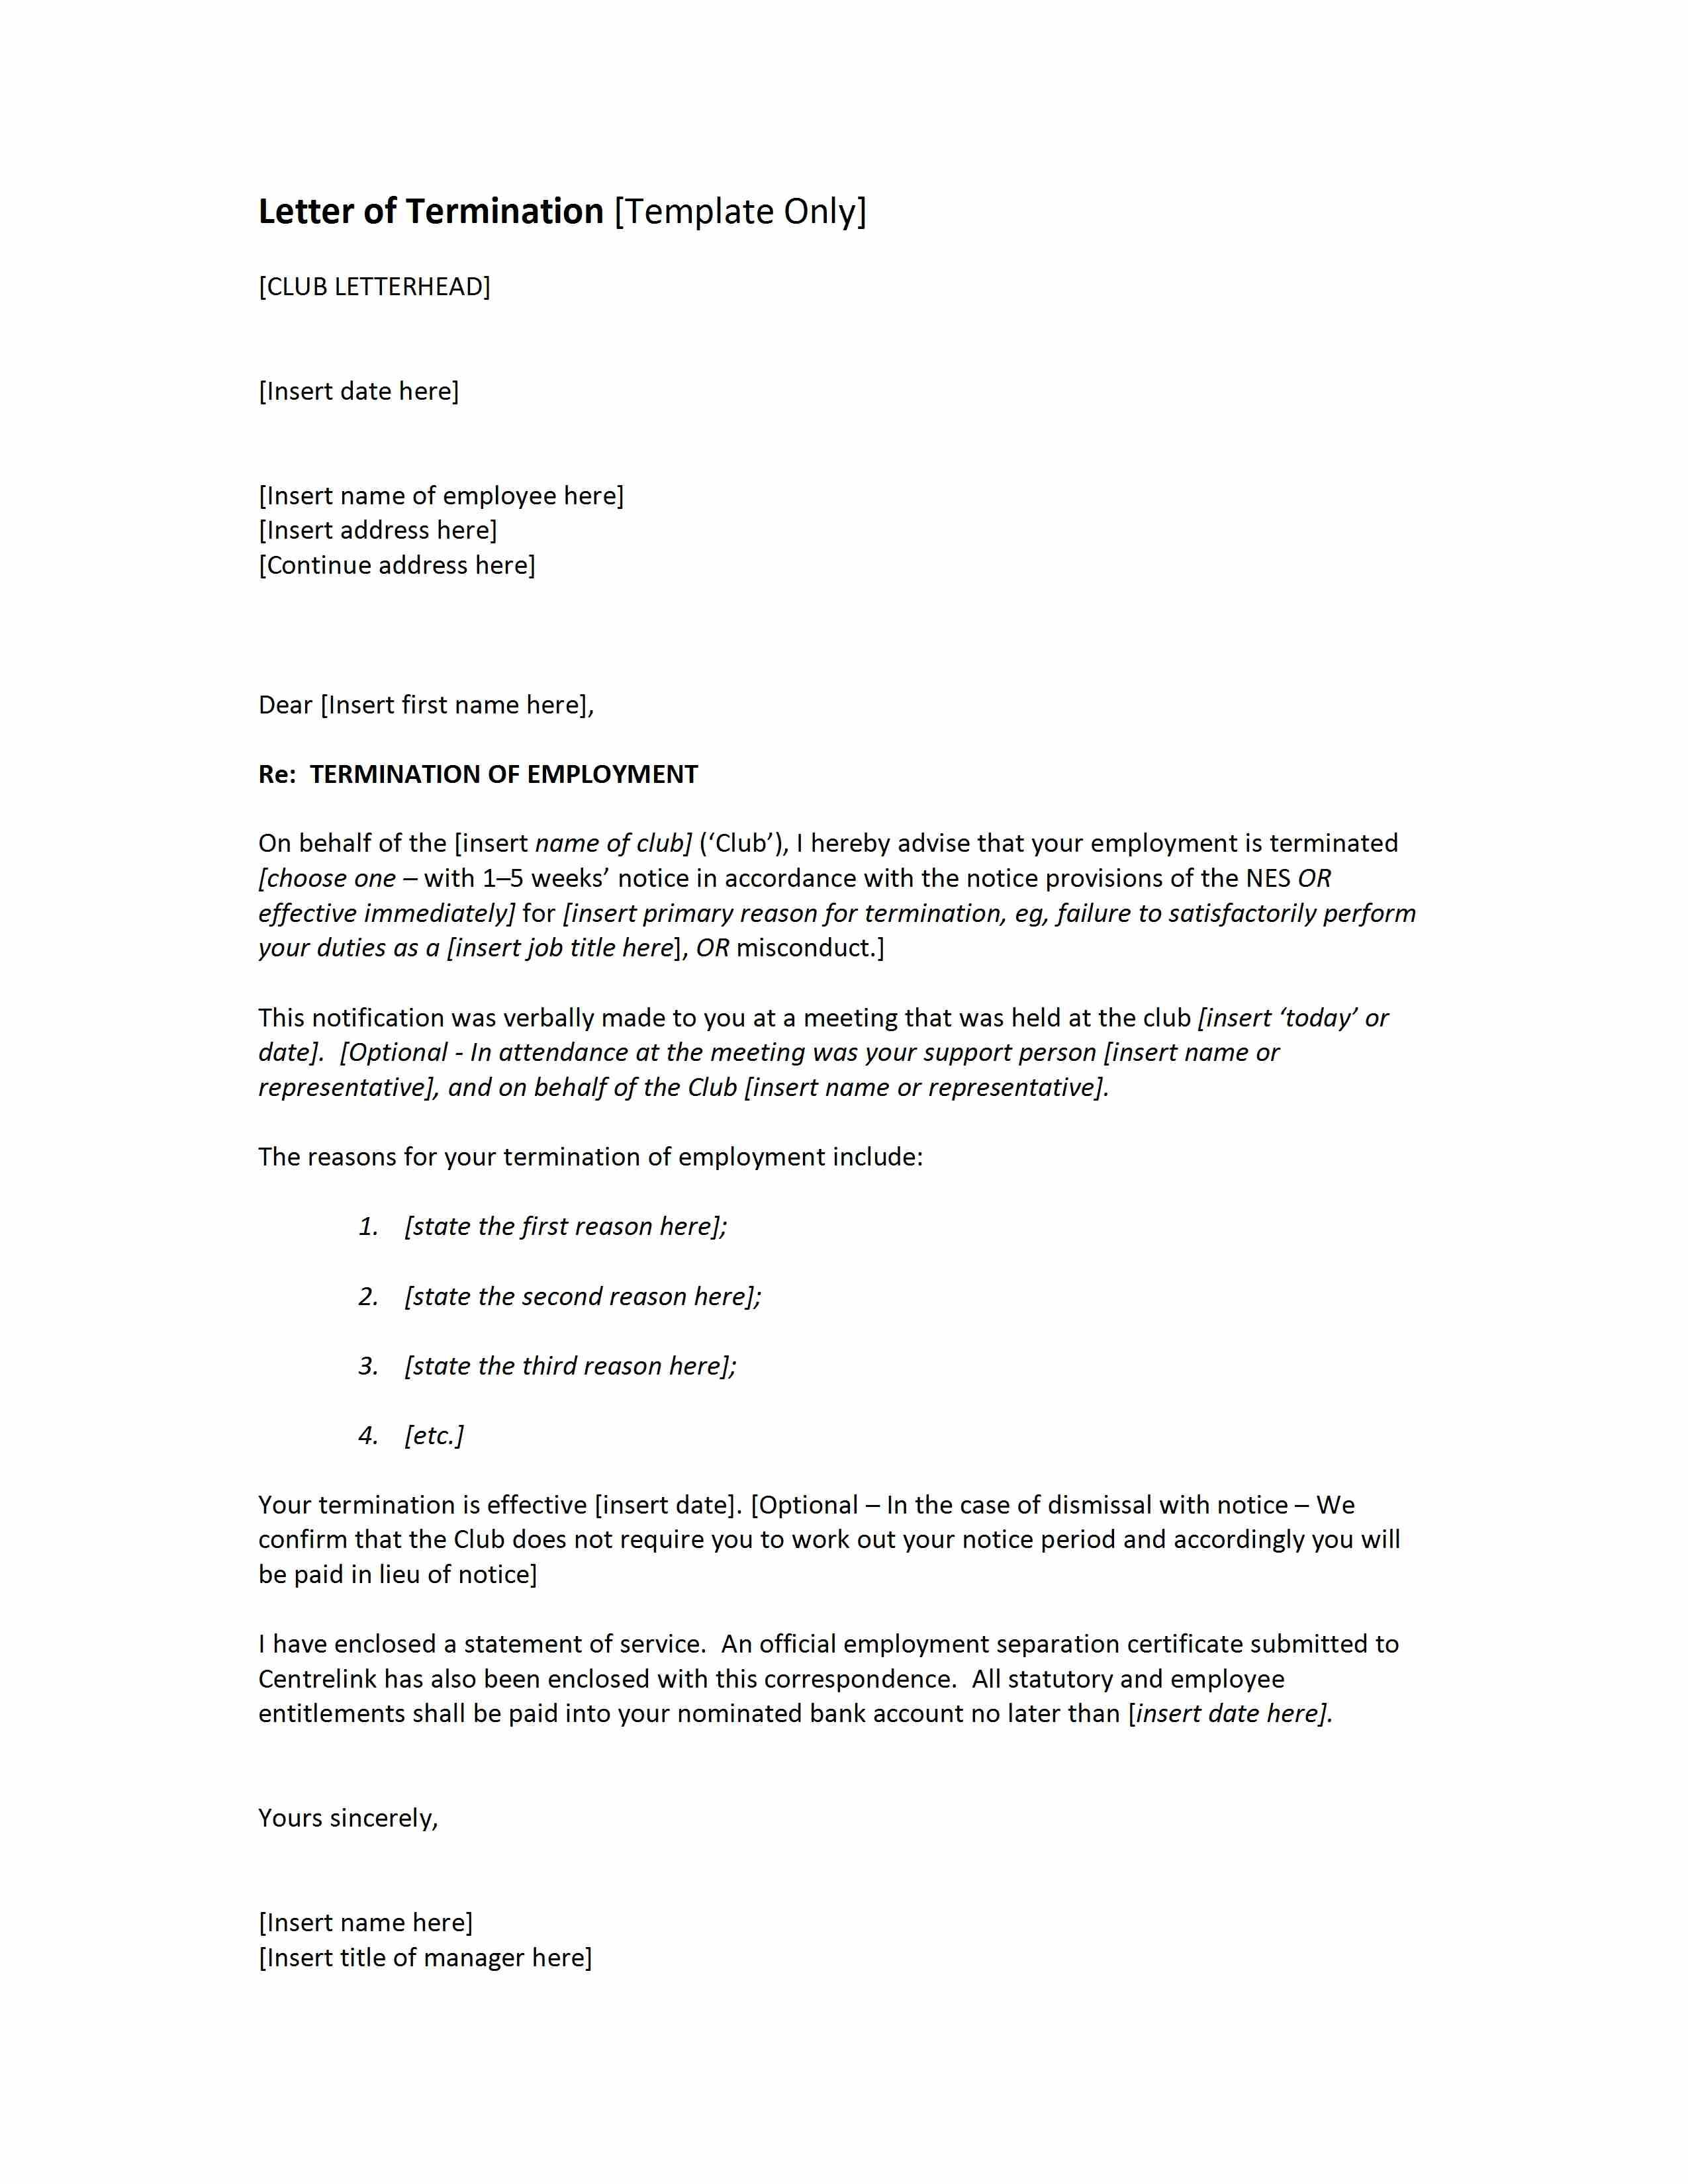 Contract Termination Letter Free Microsoft Word Templates Create